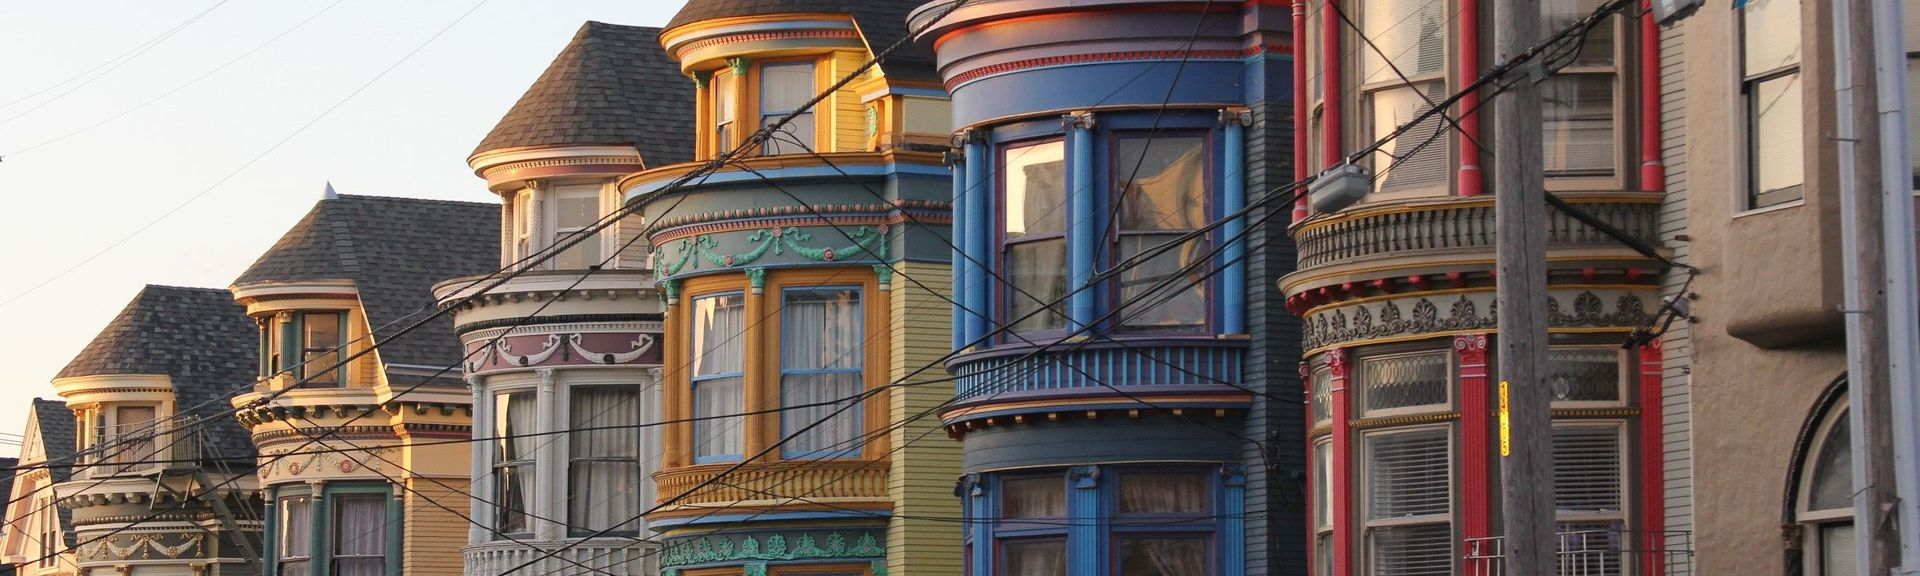 Haight-Ashbury, San Francisco, California, United States of America